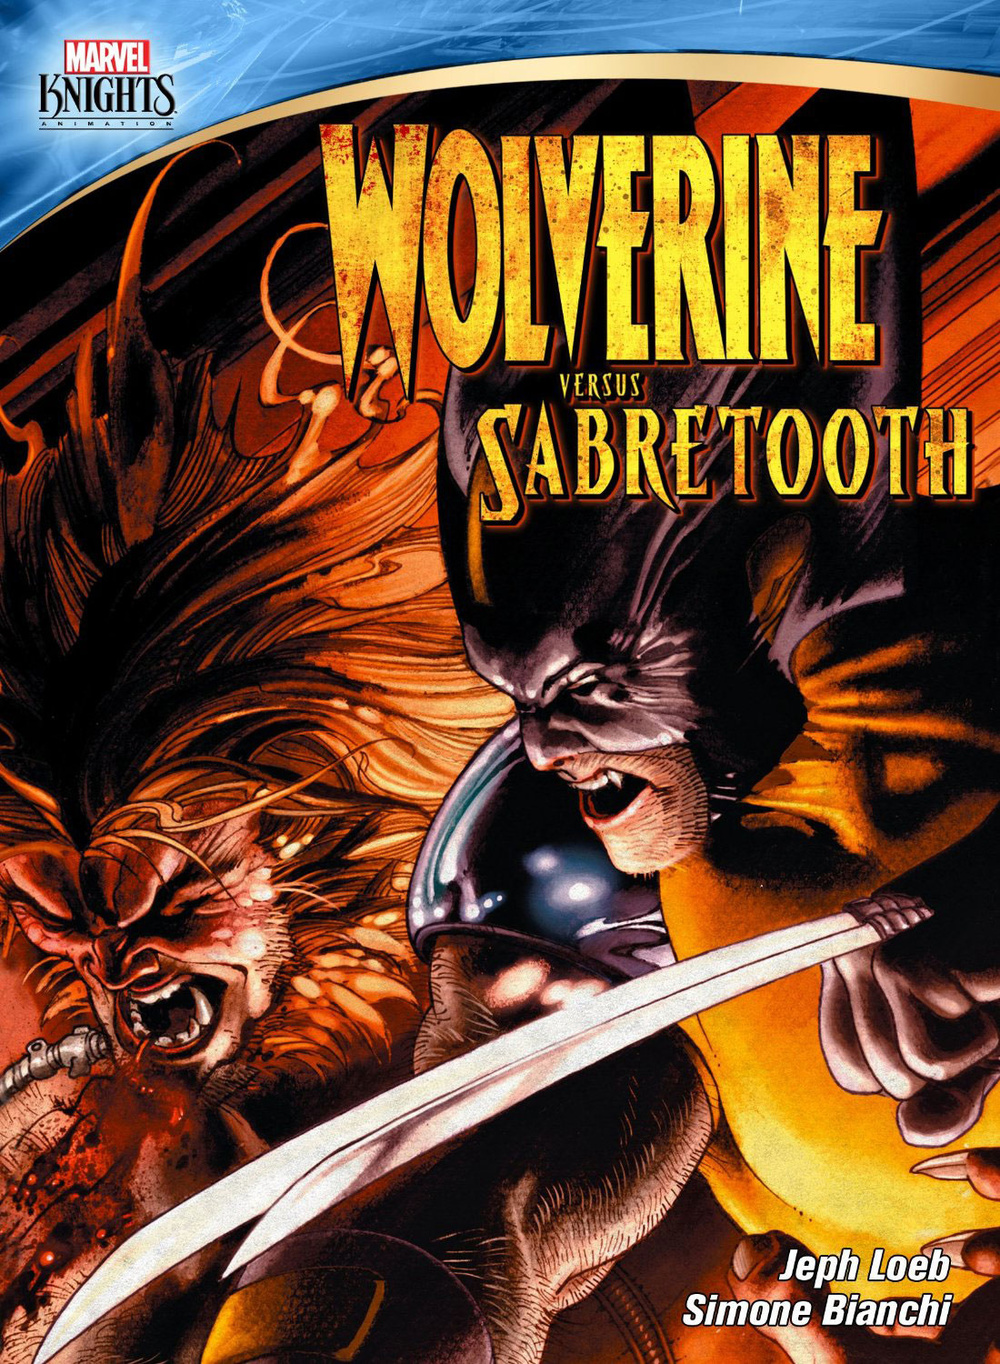 trailer-for-marvel-knights-animation-wolverine-vs-sabertooth.jpg